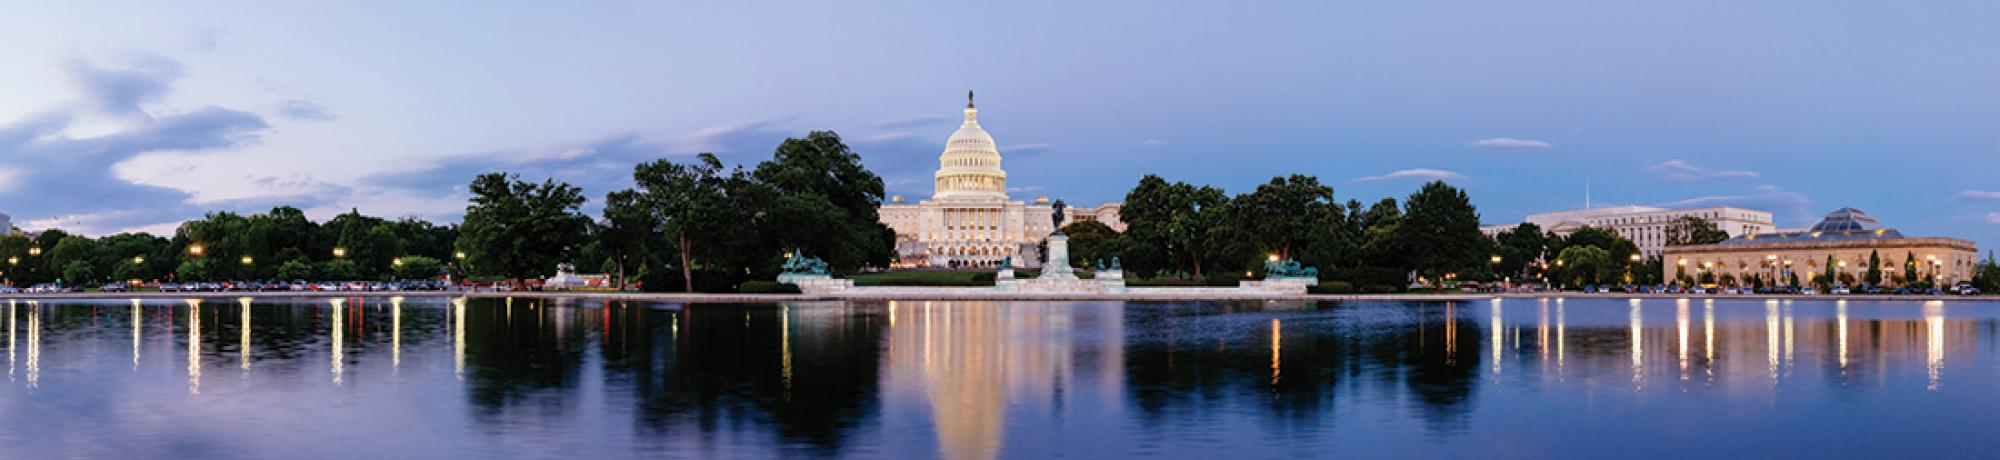 Photo of U.S. capitol building seen from the National Mall